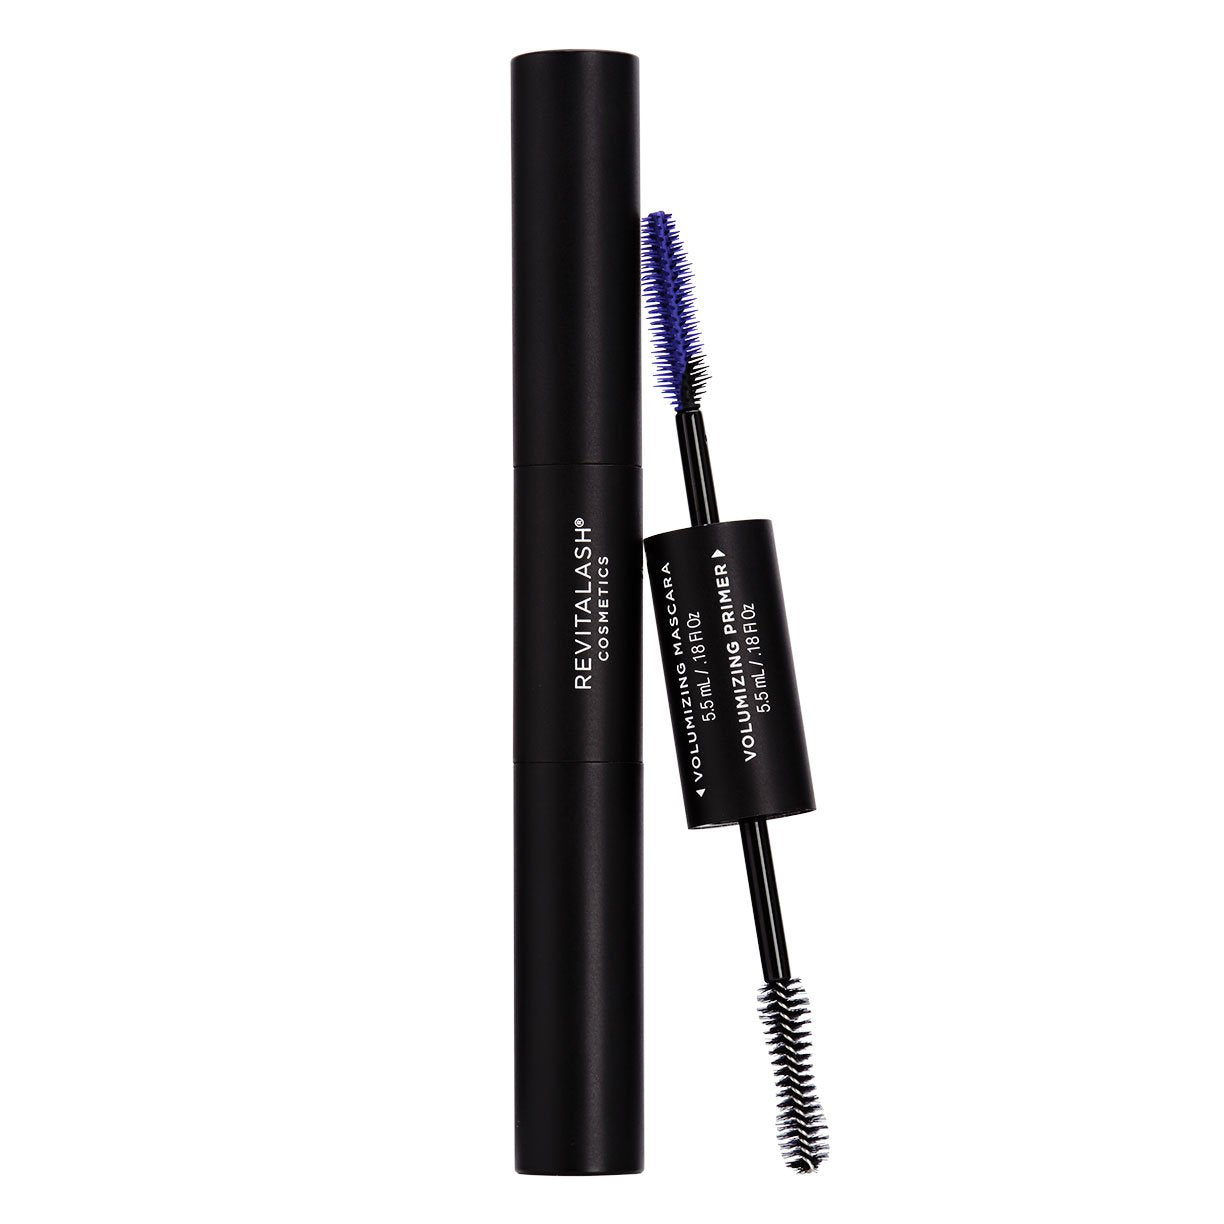 Double Ended Volume Set -- Primer + Mascara ** .36 fl oz/11ml